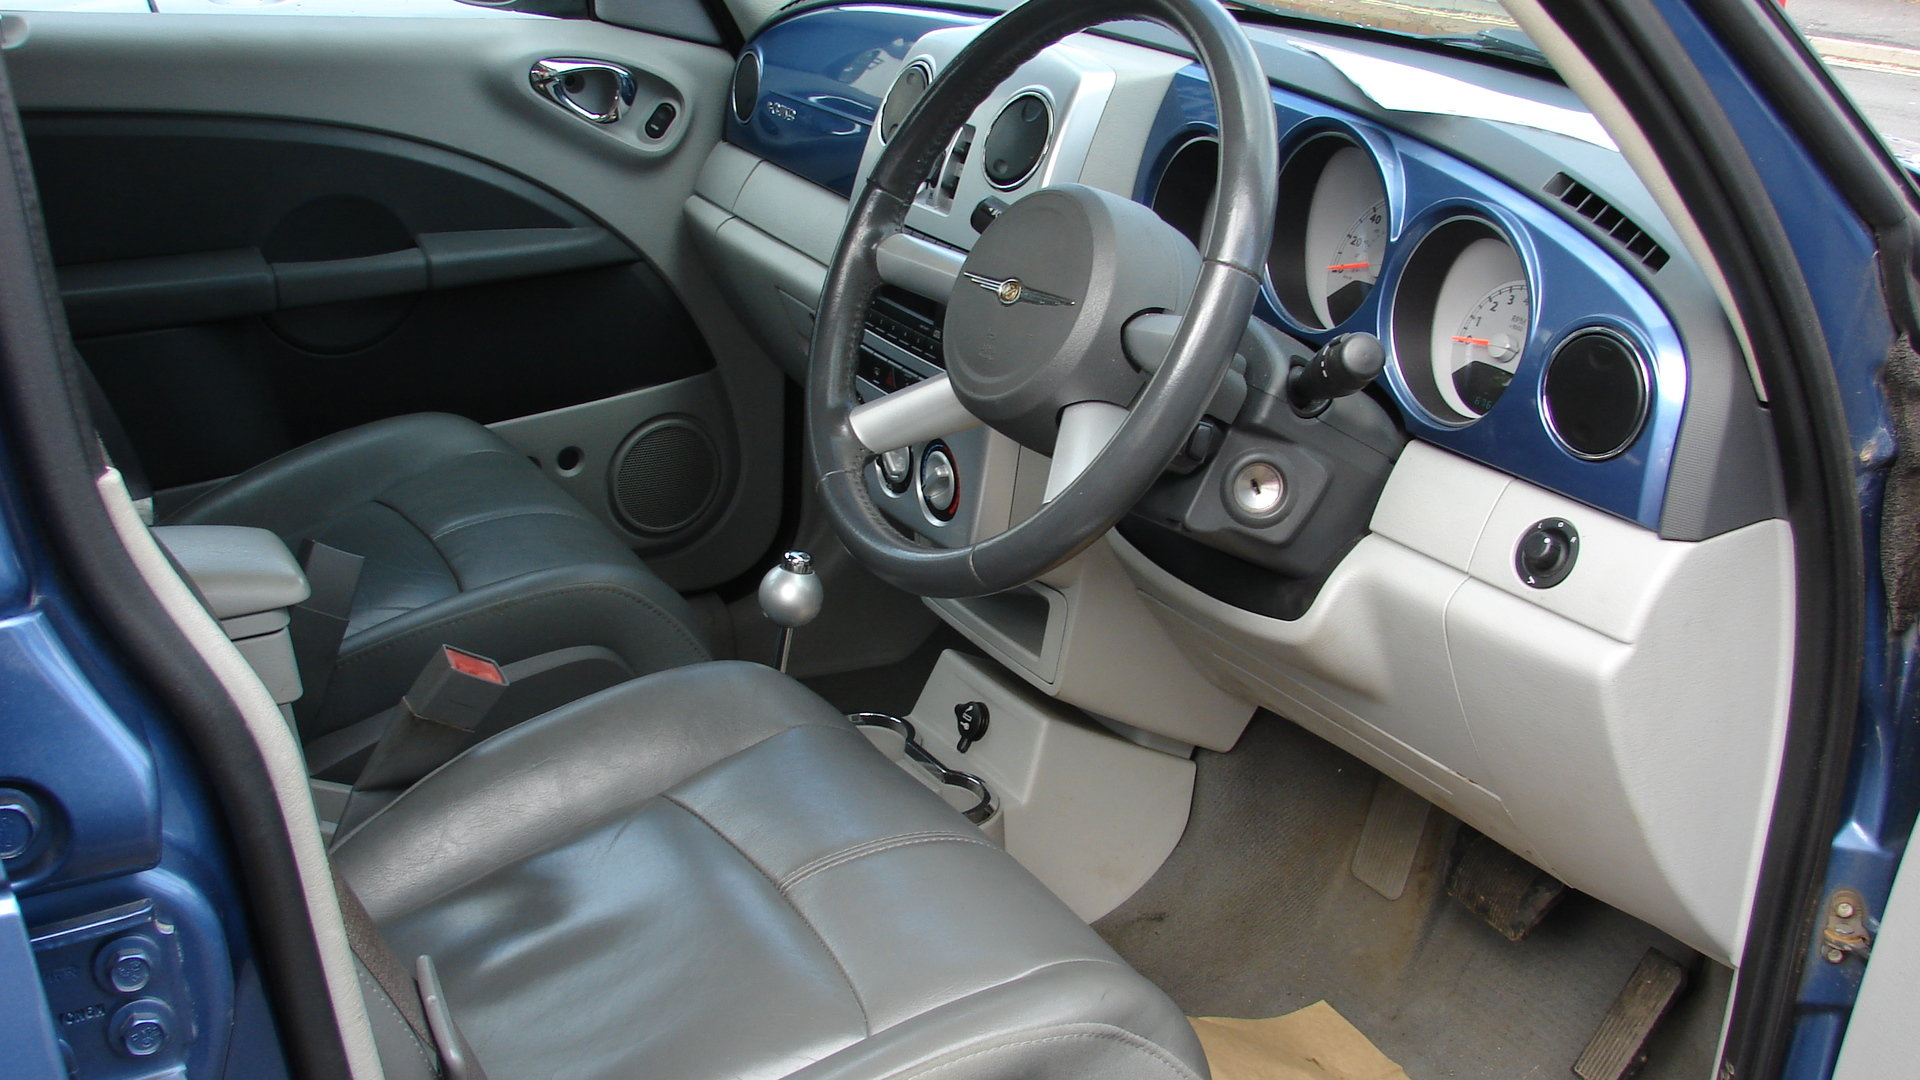 2006 PT Cruiser retro ride with new car drive For Sale (picture 3 of 6)